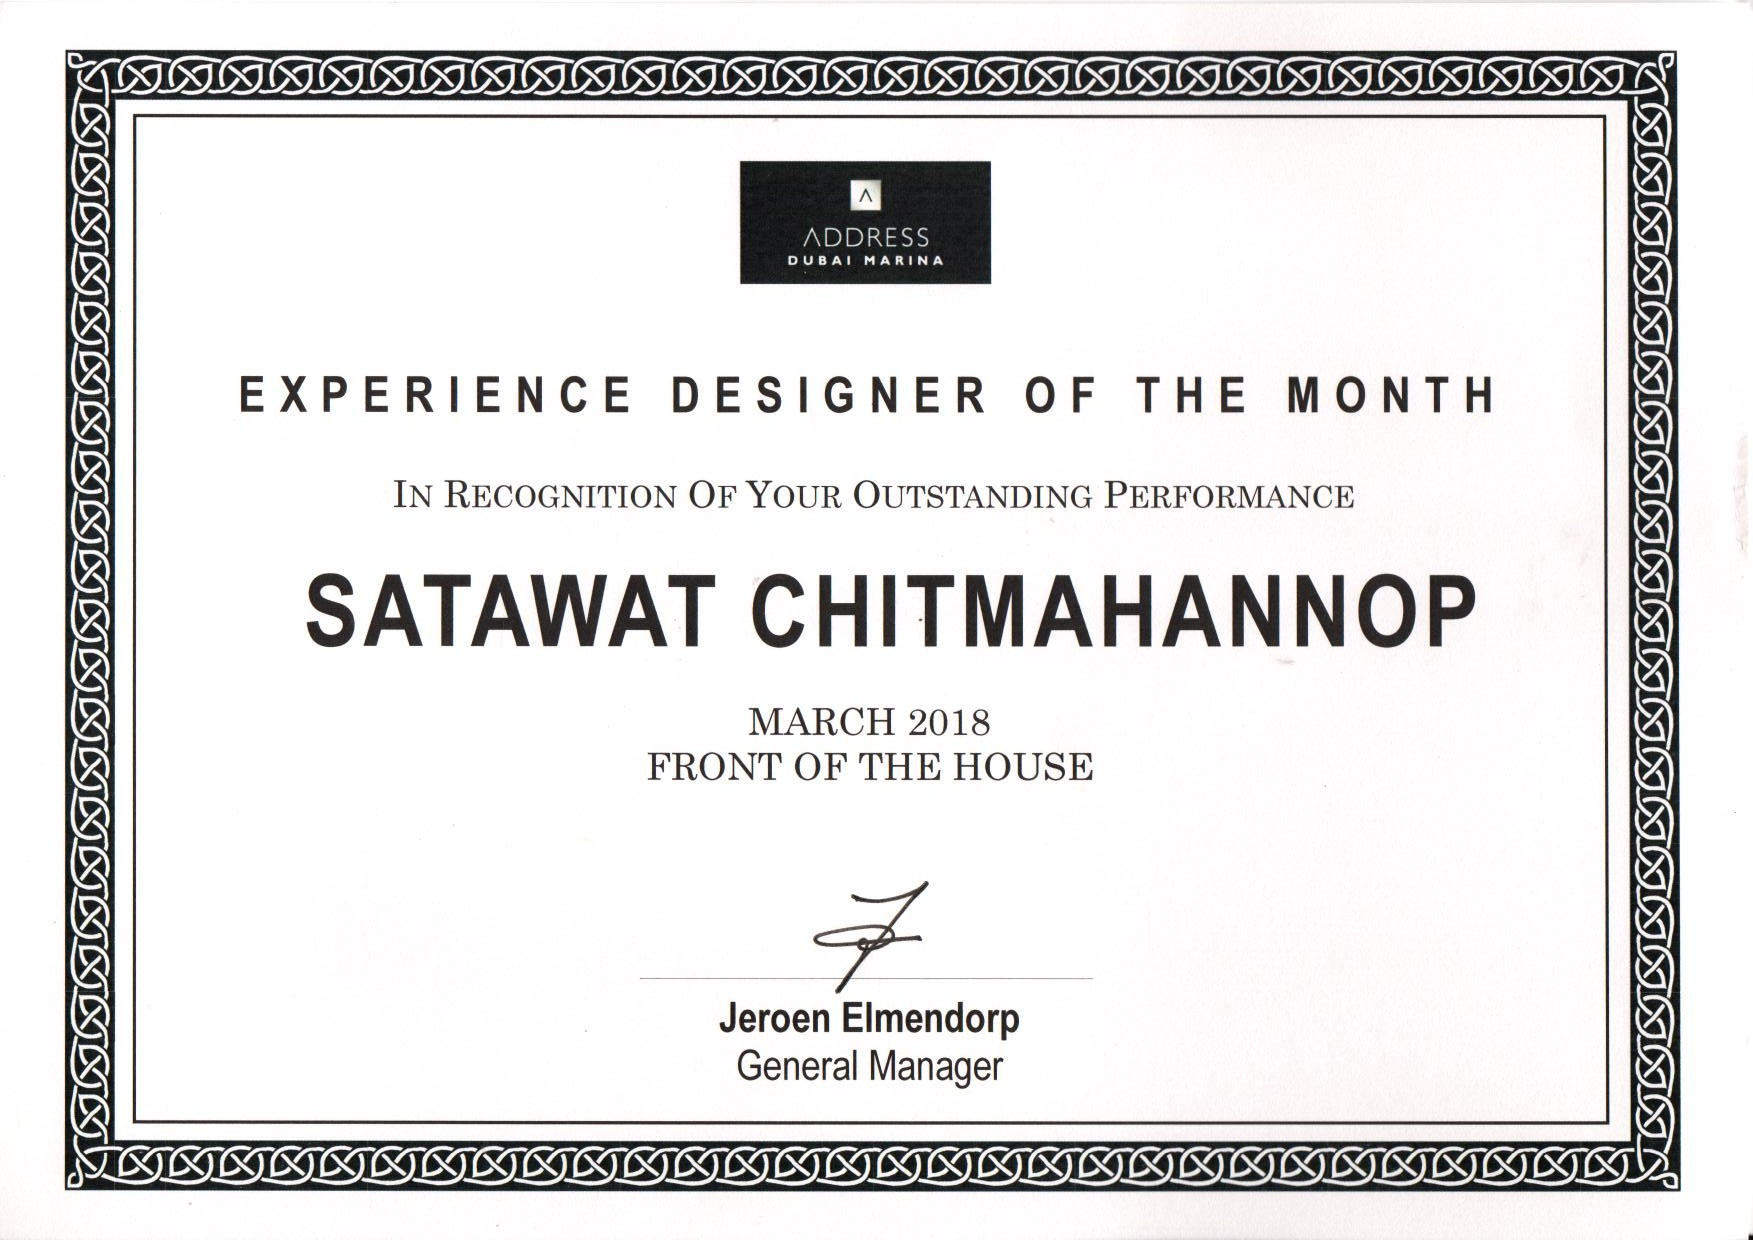 Satawat Front of the House, March 2018 Certificate.jpg